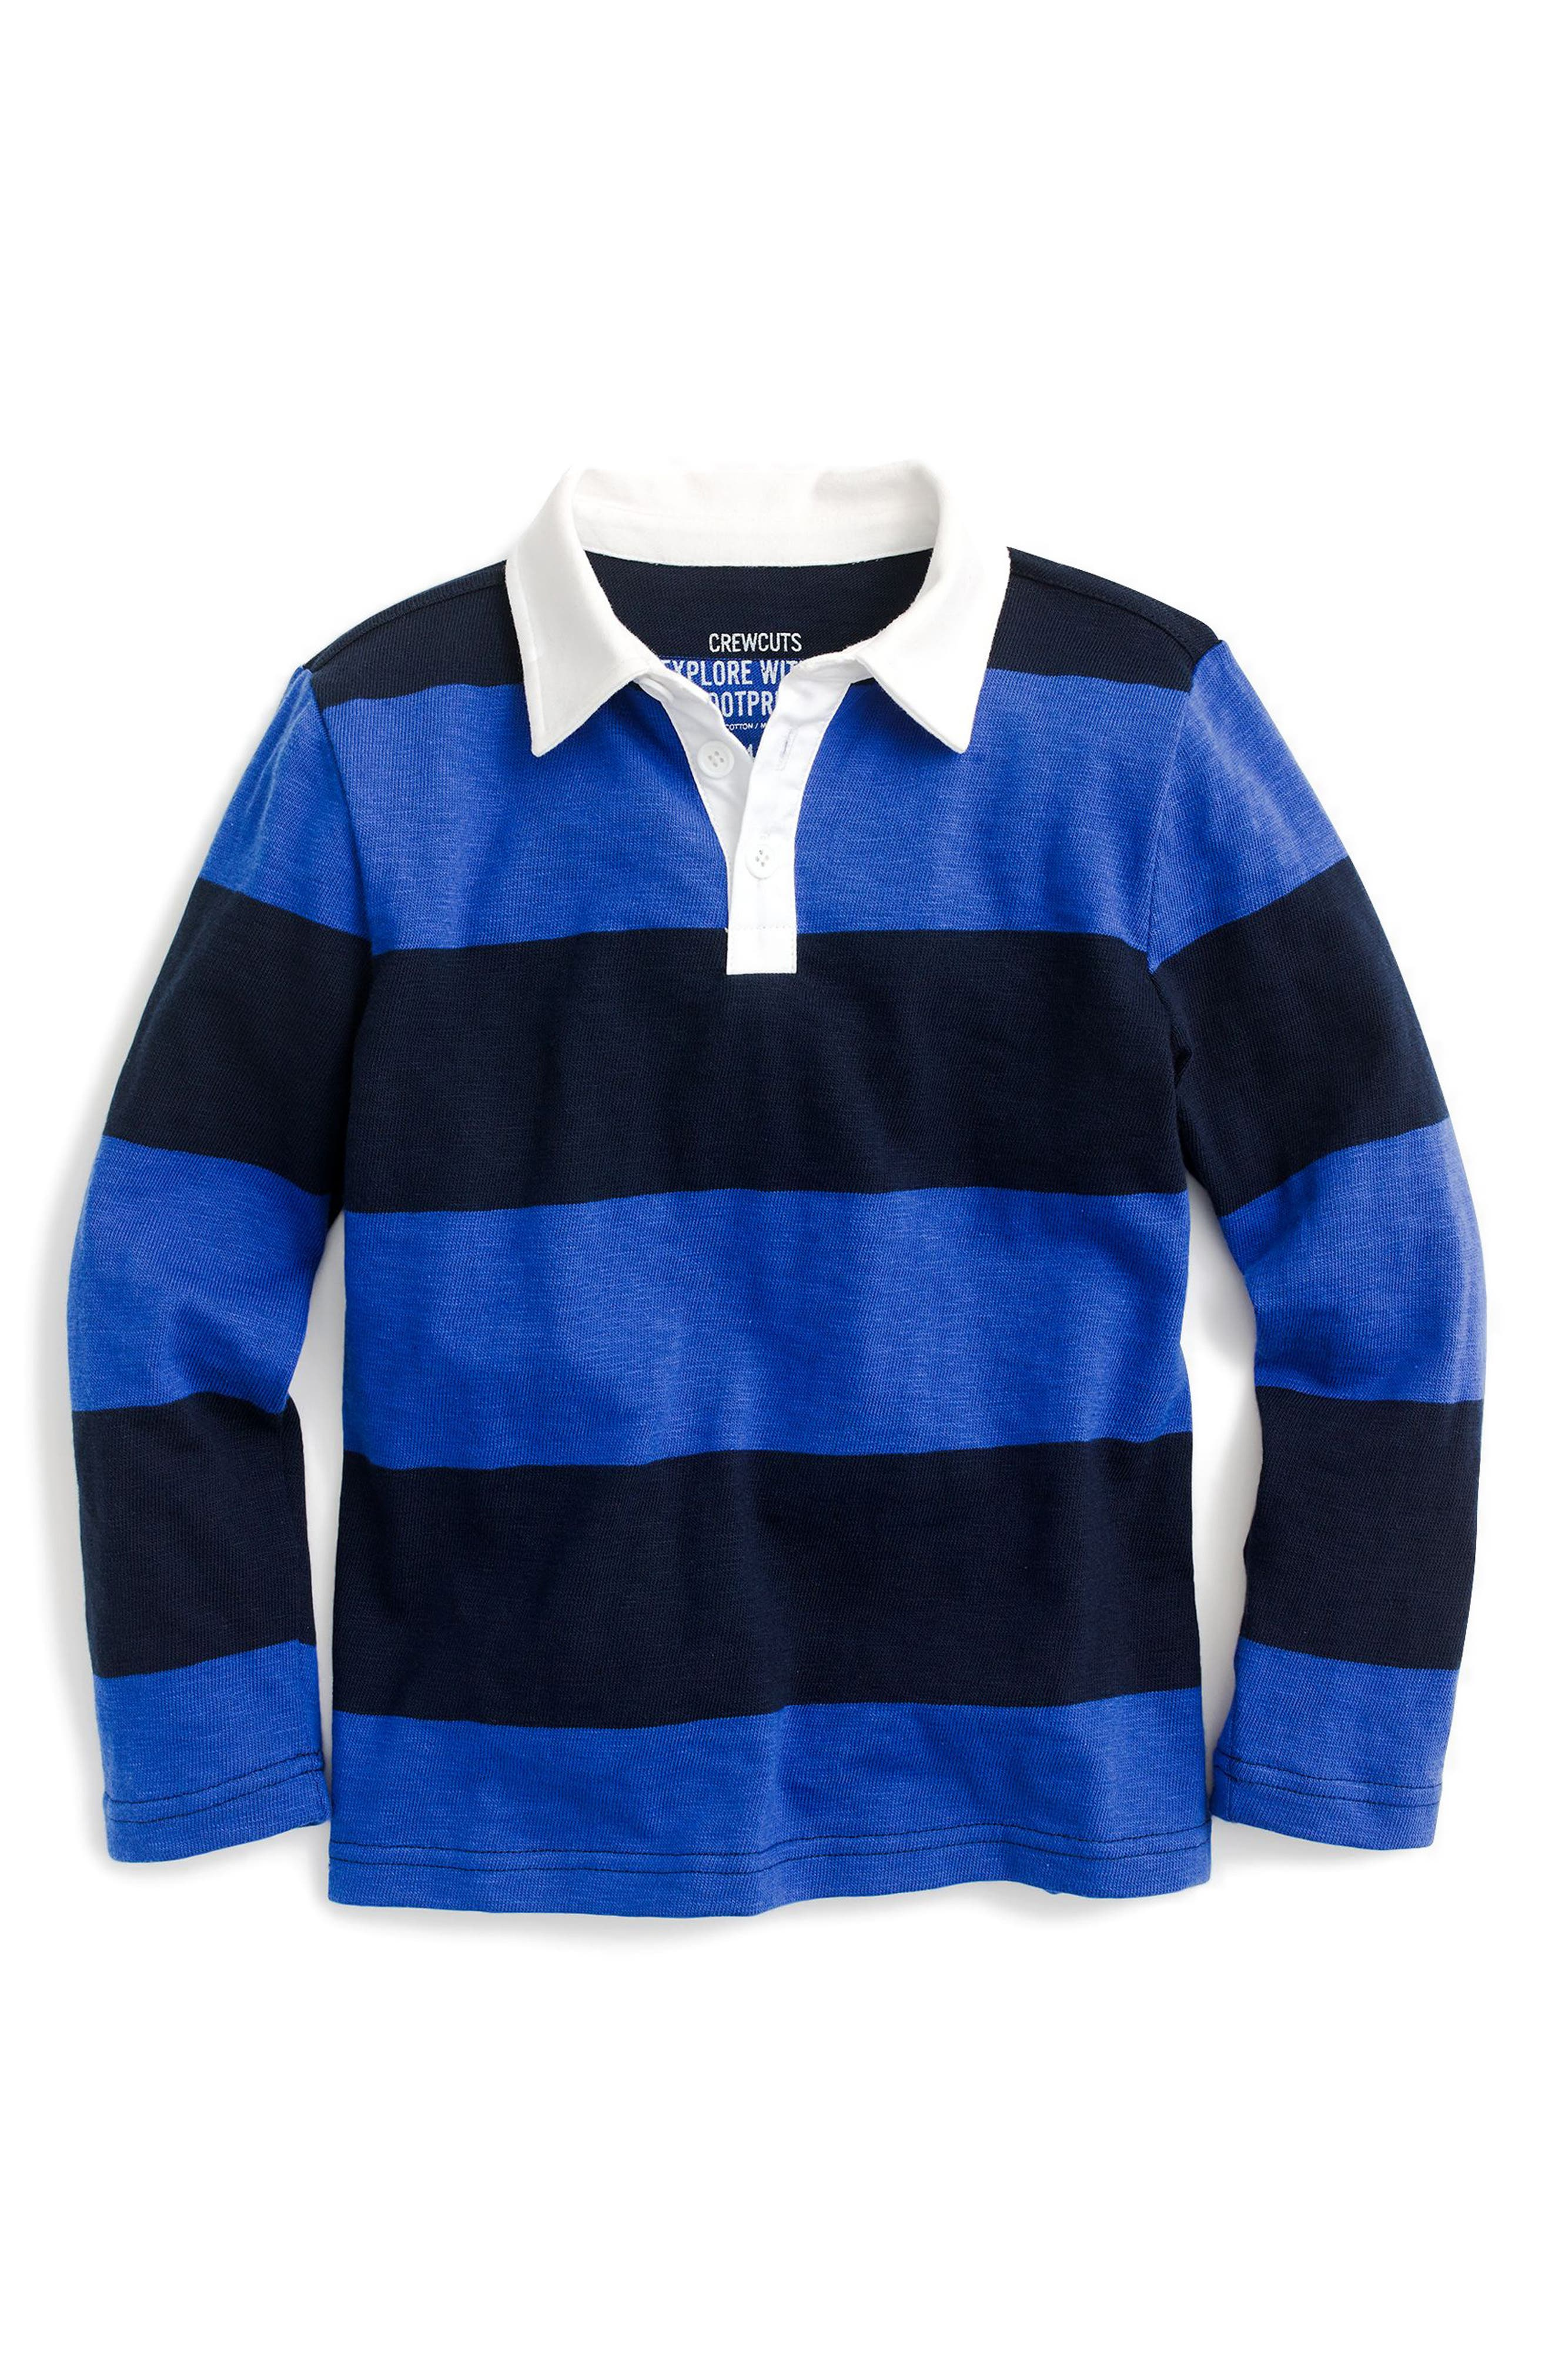 crewcuts by J.Crew Striped Rugby Shirt (Toddler Boys, Little Boys & Big Boys)